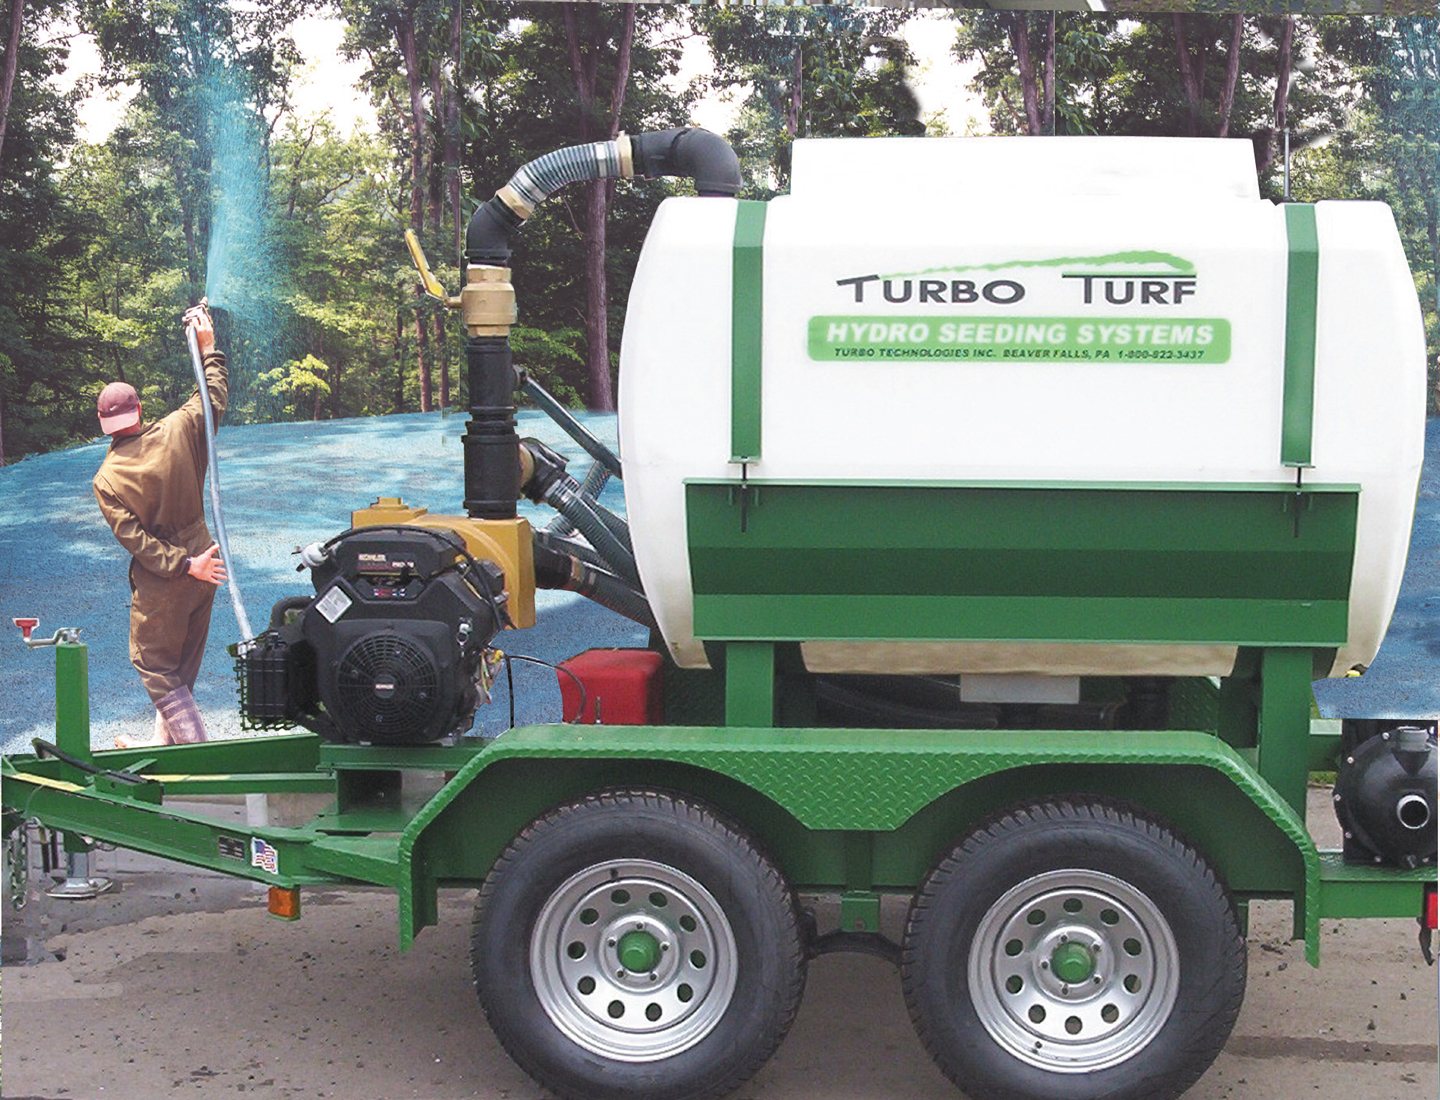 Turbo Turf HS-500-XPW-P hydro seeding a back yard